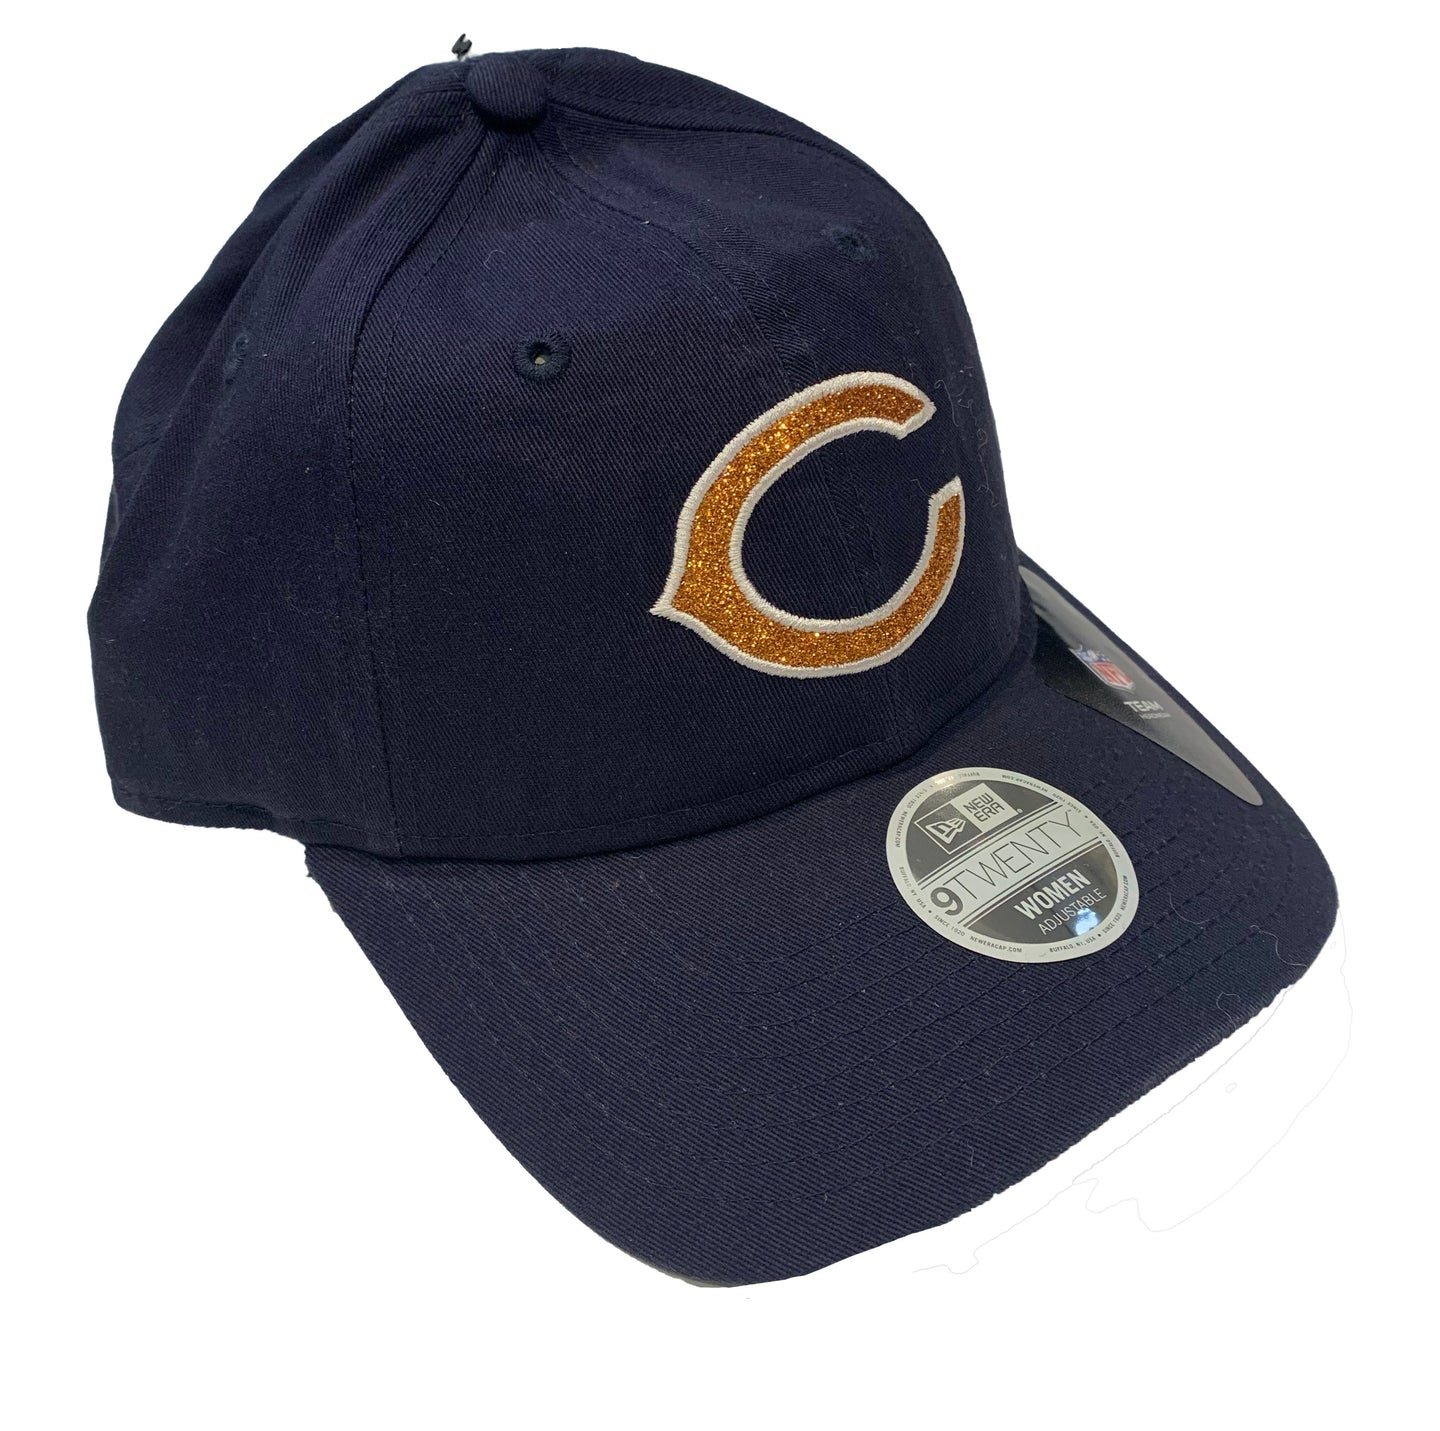 Chicago Bears 'Glisten' Hat